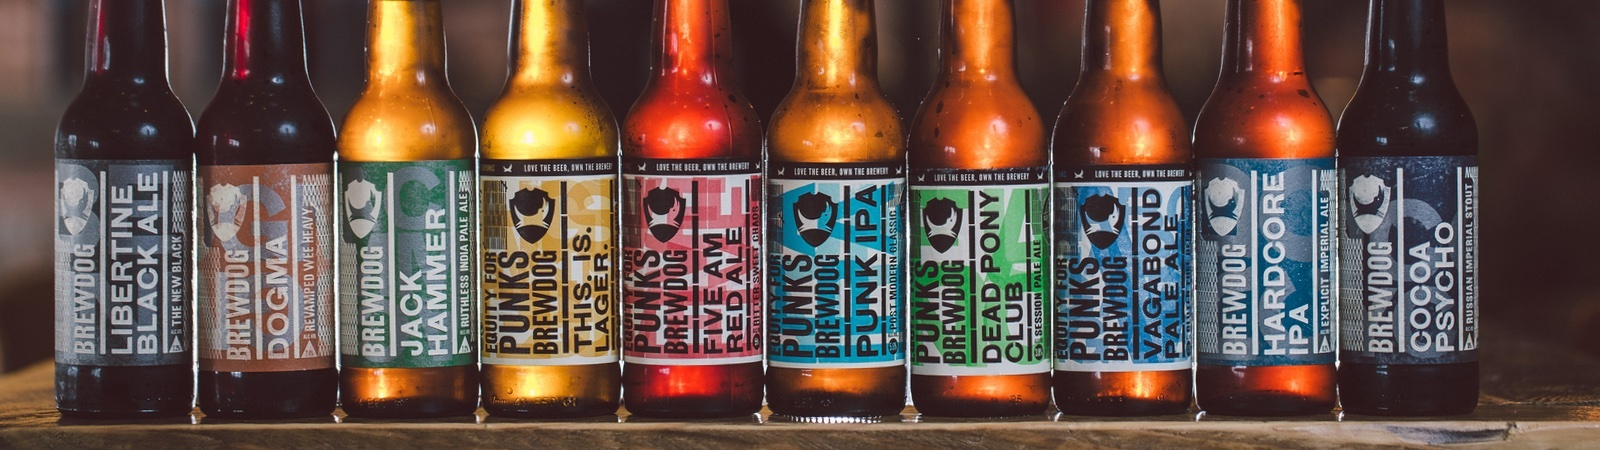 BrewDog Bottle Range